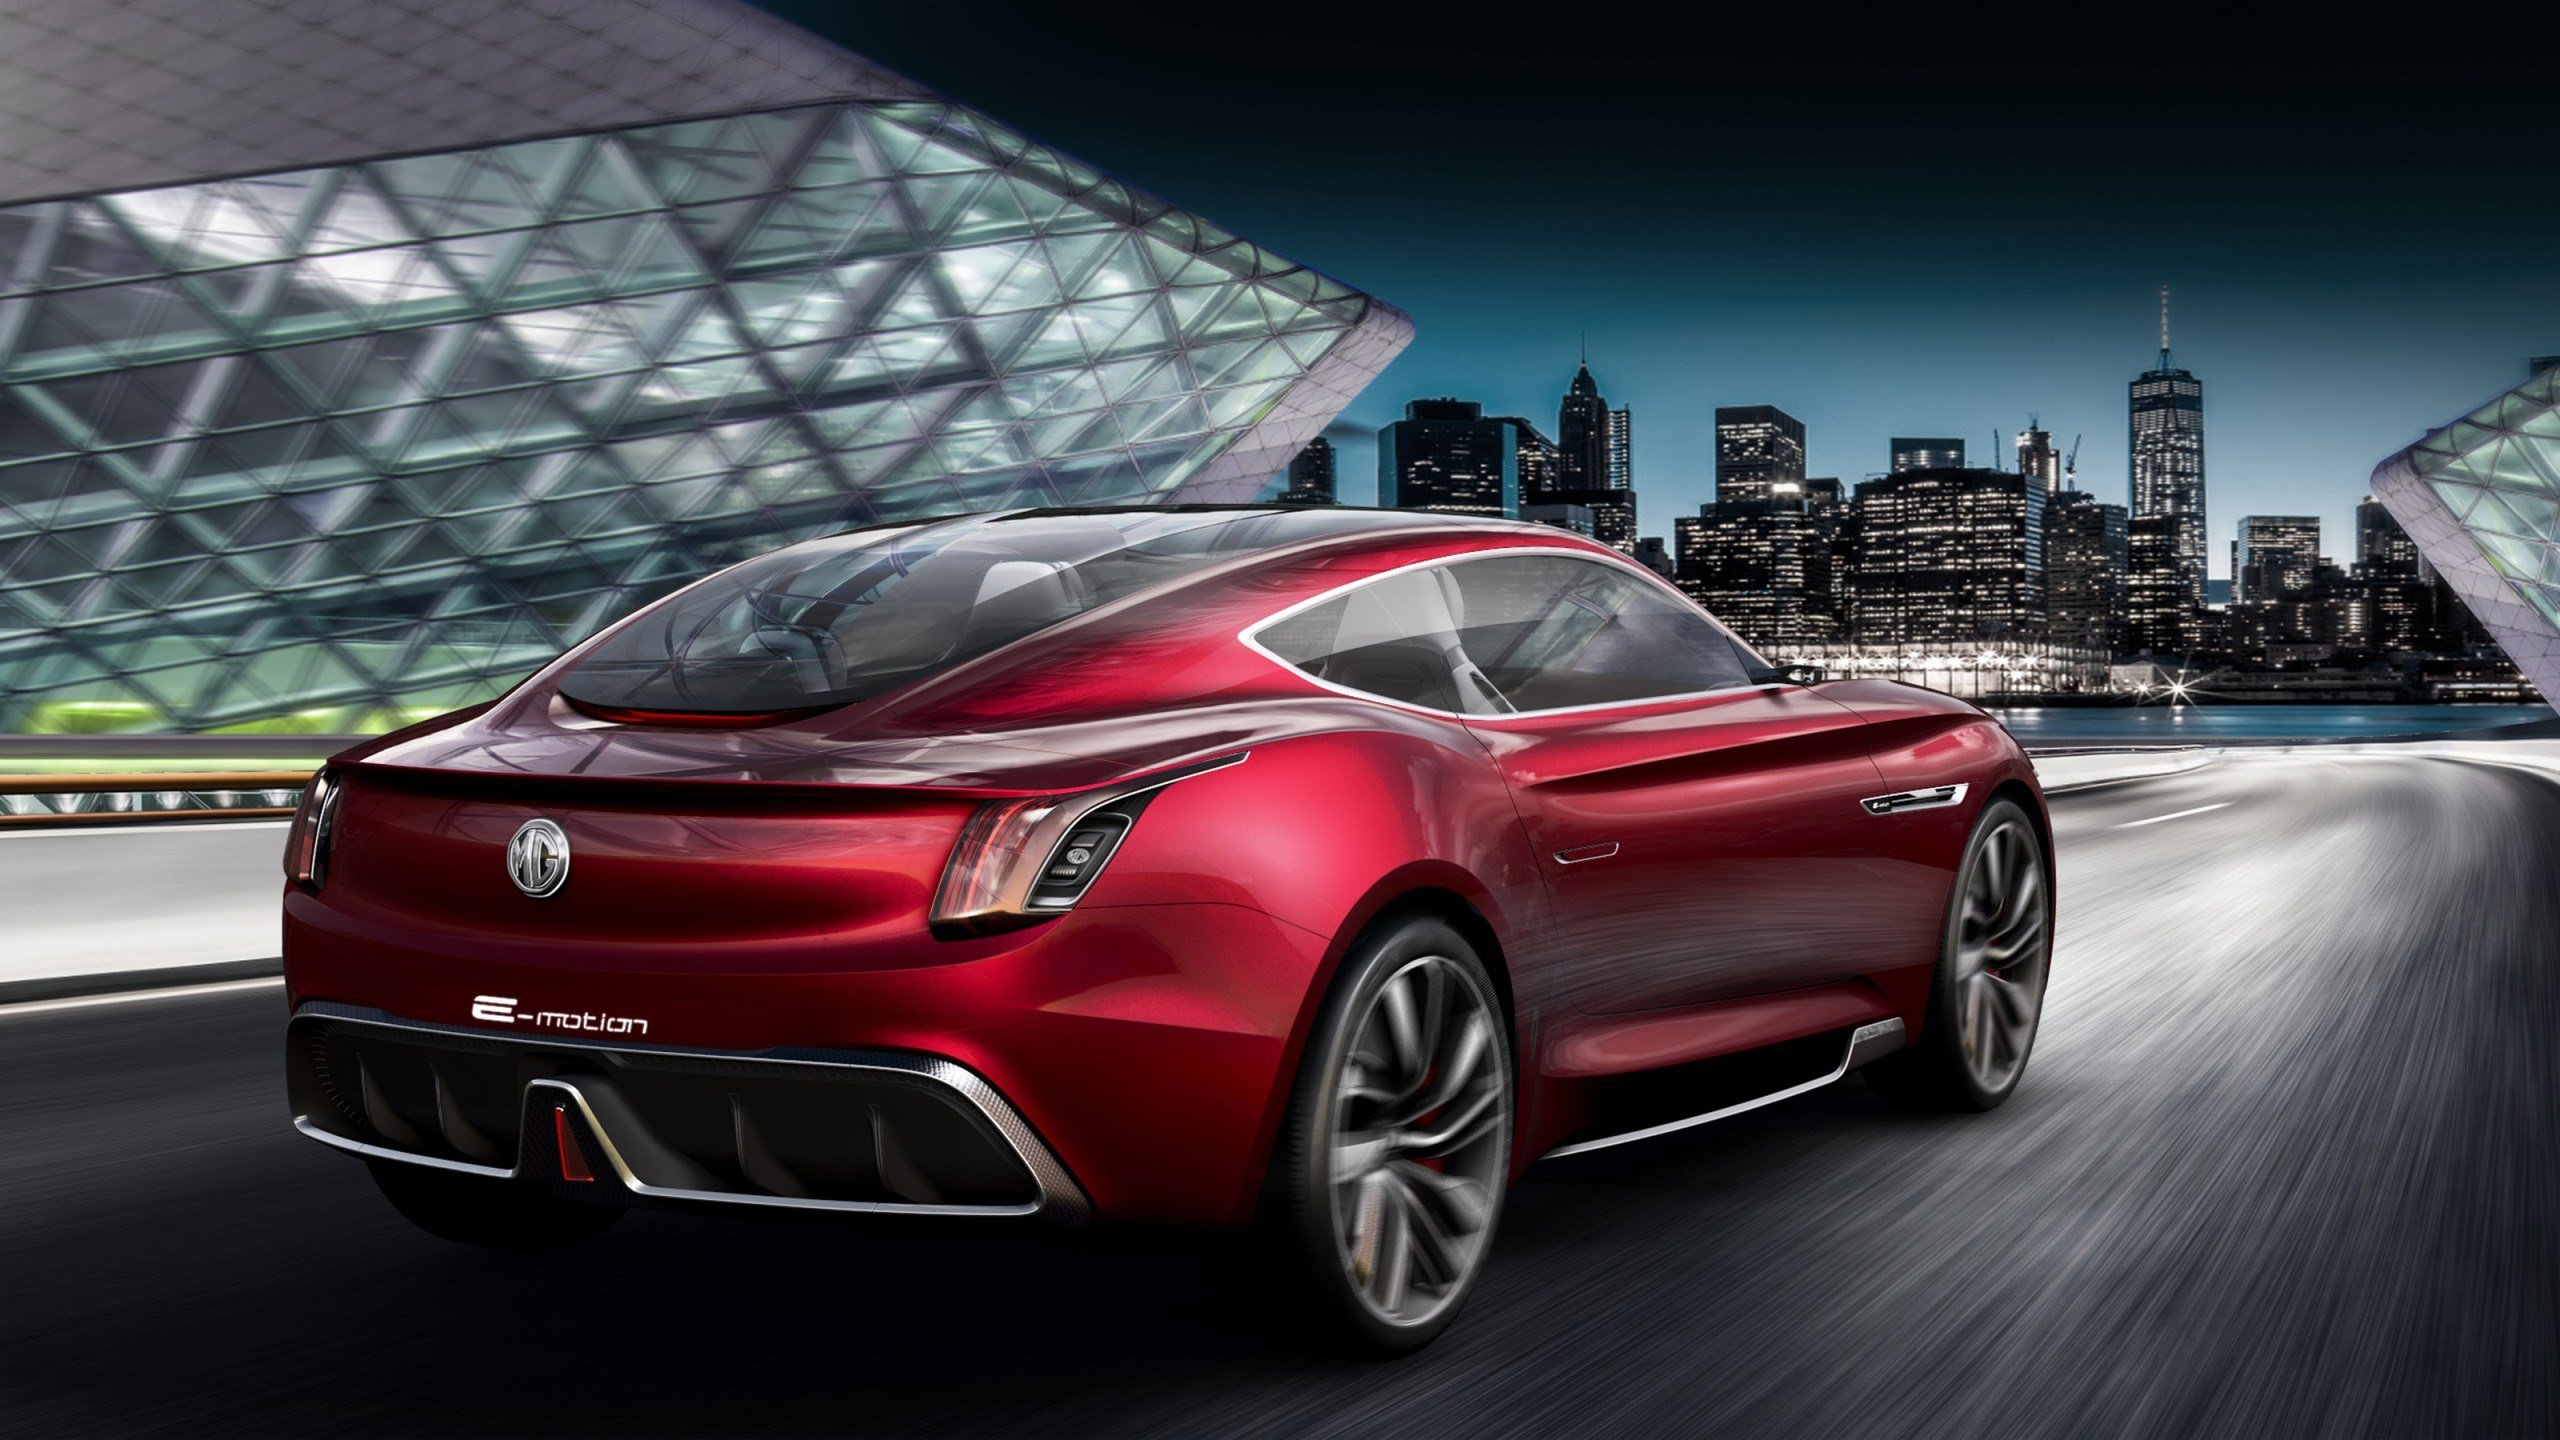 Latest Mg E Motion Concept Car 4 Wallpaper Hd Car Wallpapers Free Download